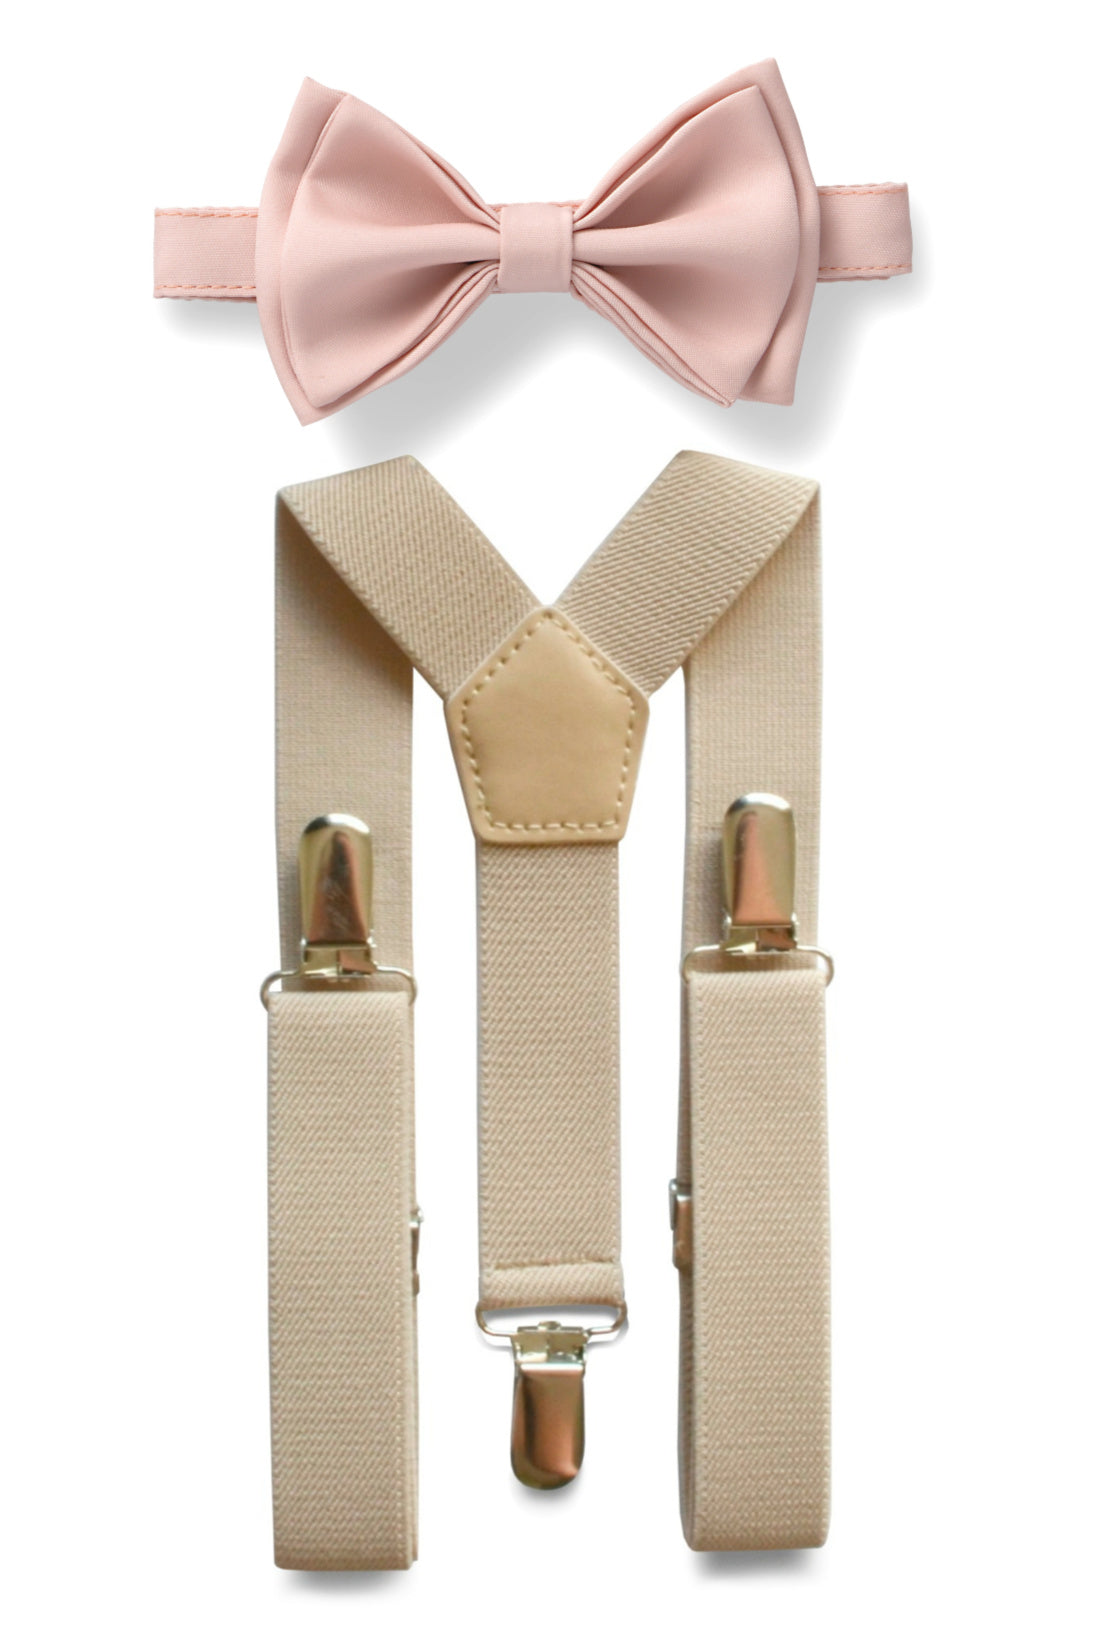 Beige Suspenders & Blush Bow Tie